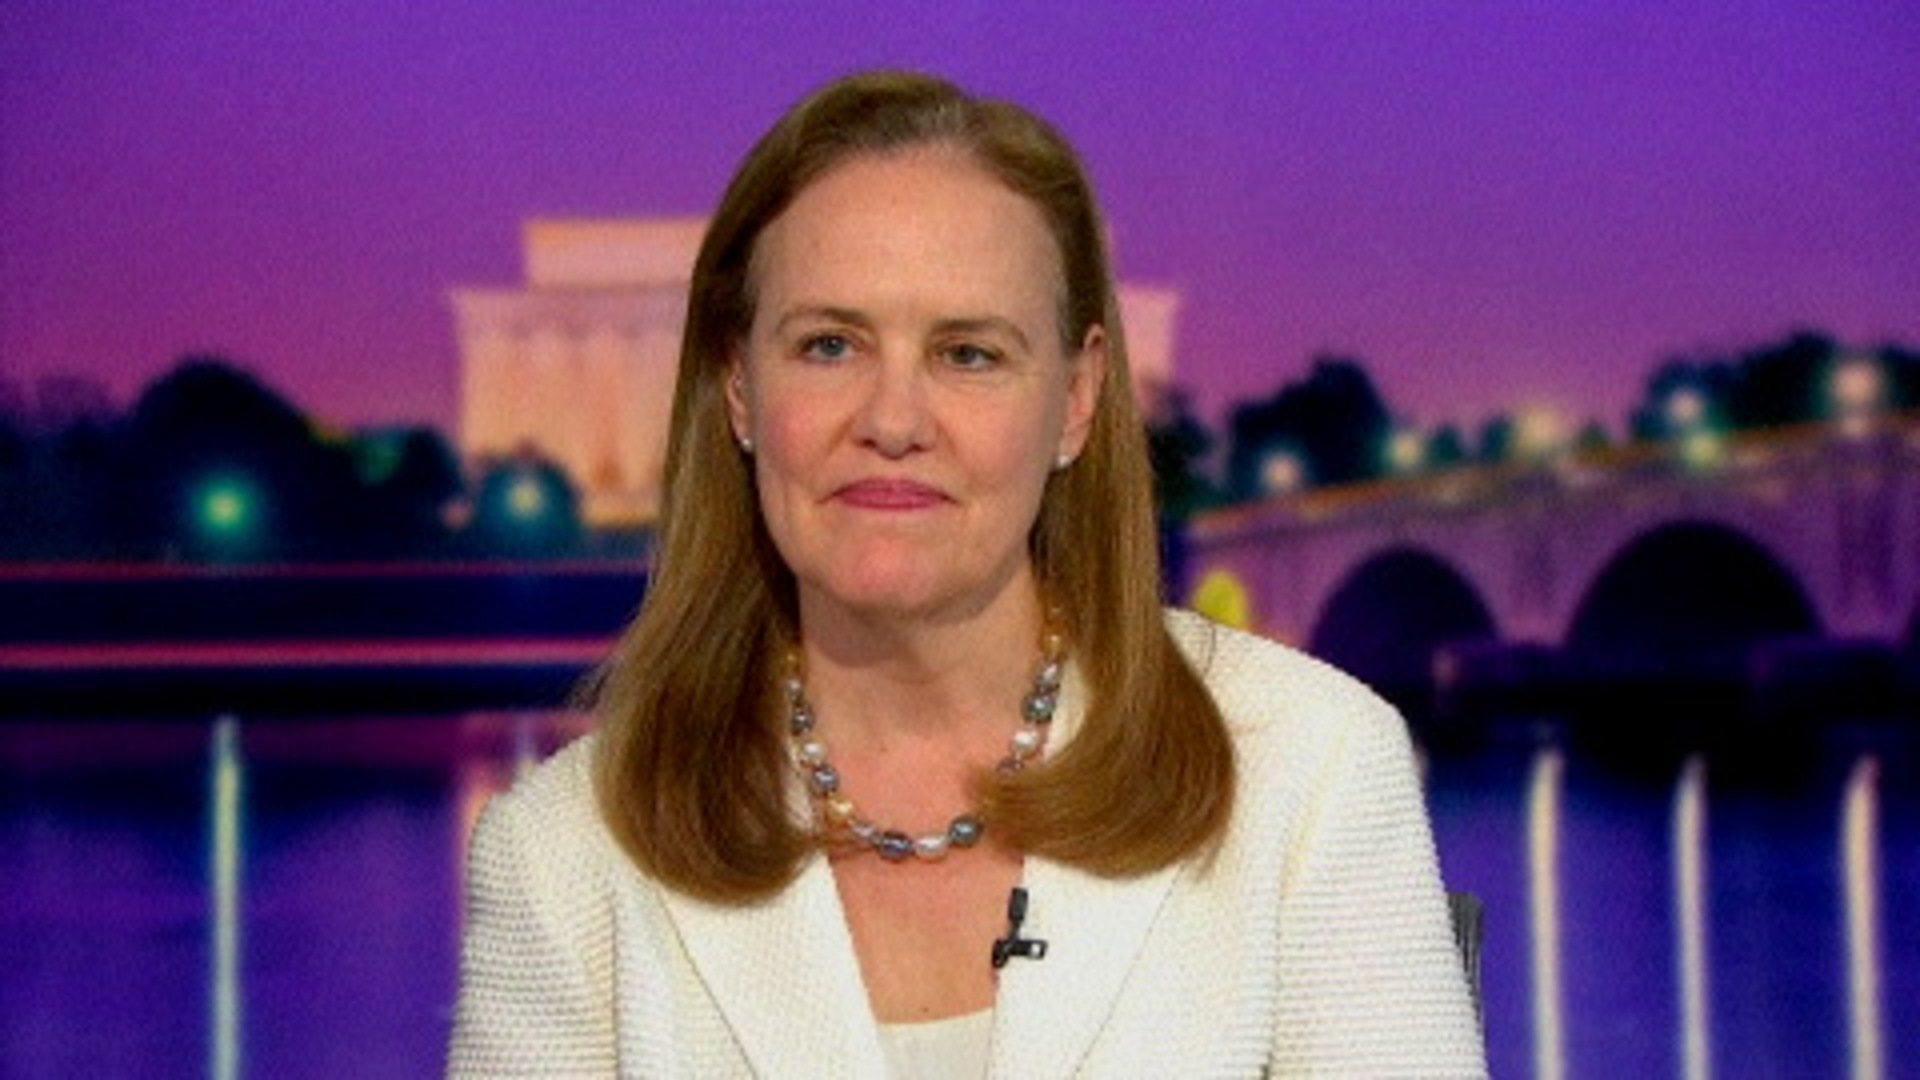 flournoy dating Michèle flournoy (politician) photo galleries, news, relationships and more on spokeo.